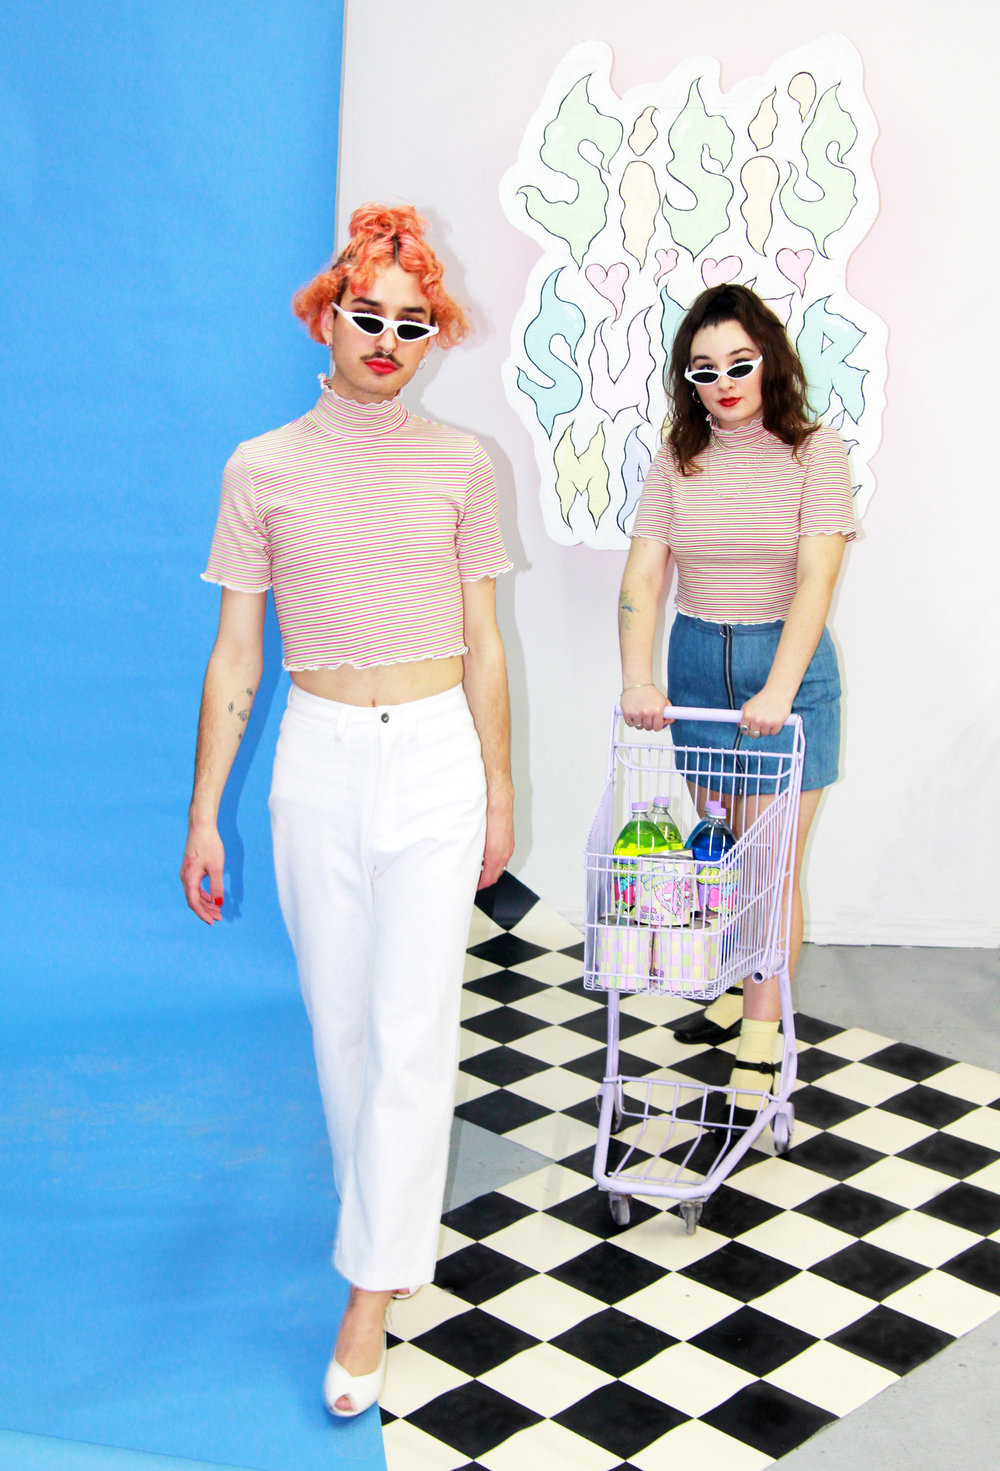 spring pastels with a twist - The second part of our Citizen Handmade collection is all about fun. Mesh, stripes, plaid and energizing colours to wake us all up after a long grey winter.Styling by Leah Beth GoldModels: Sekoya Wellings and Stephane ChristinelMake-up provided by Fluide